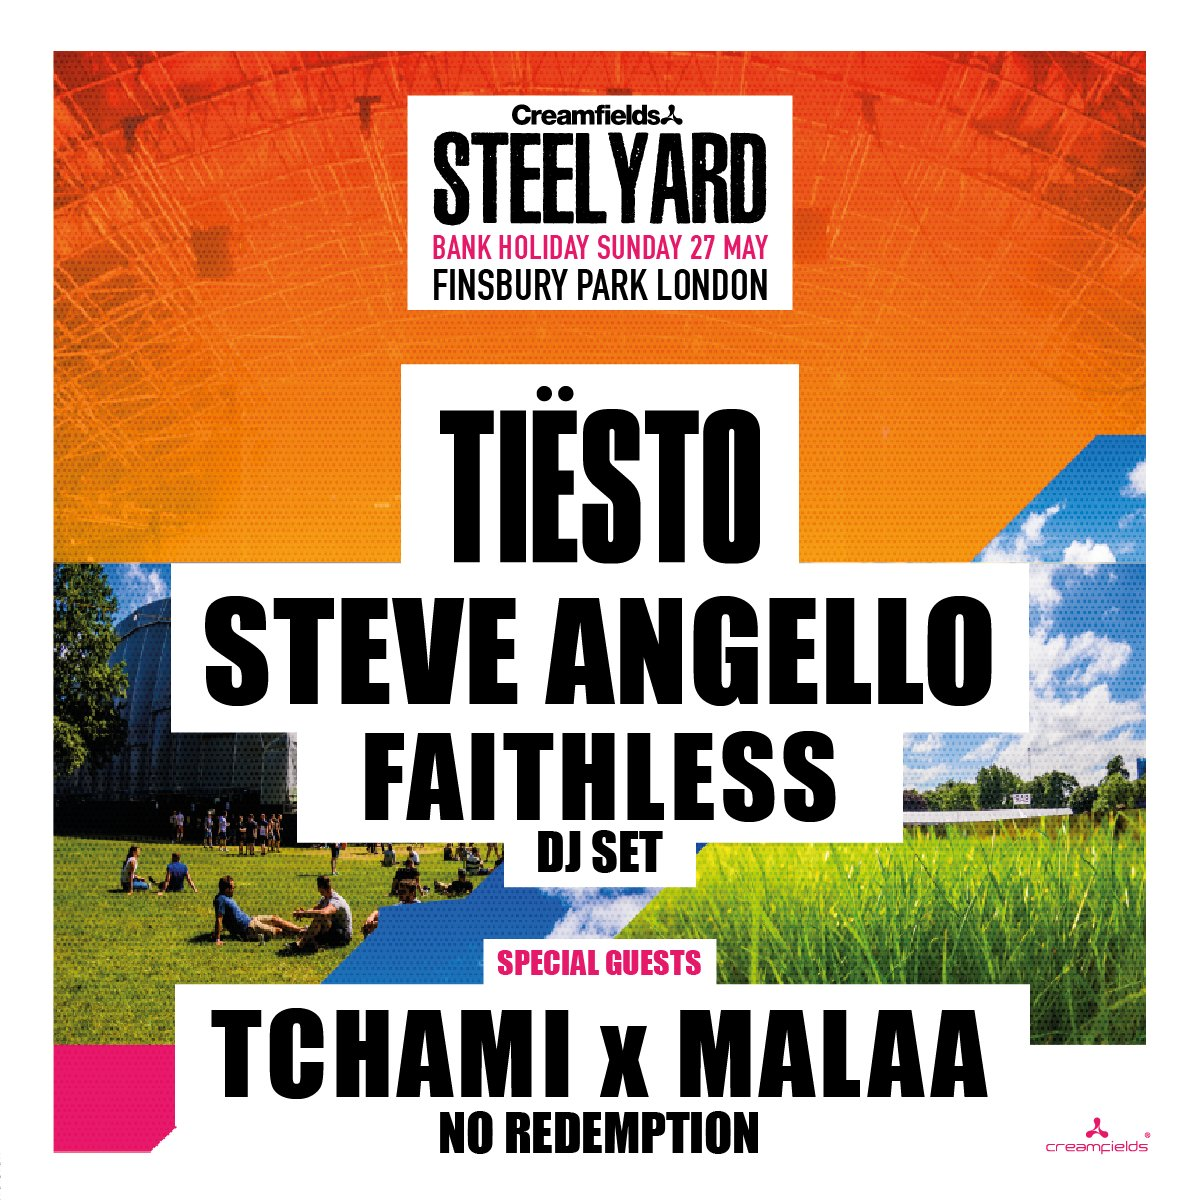 #SteelYardLondon Bank Holiday Sunday 27th May at Finsbury Park with @tiesto , @SteveAngello, @faithless dj set, plus special guests @iamTchami x @Malaamusic No Redemption 👉 https://t.co/7ZgwgD61rb #London